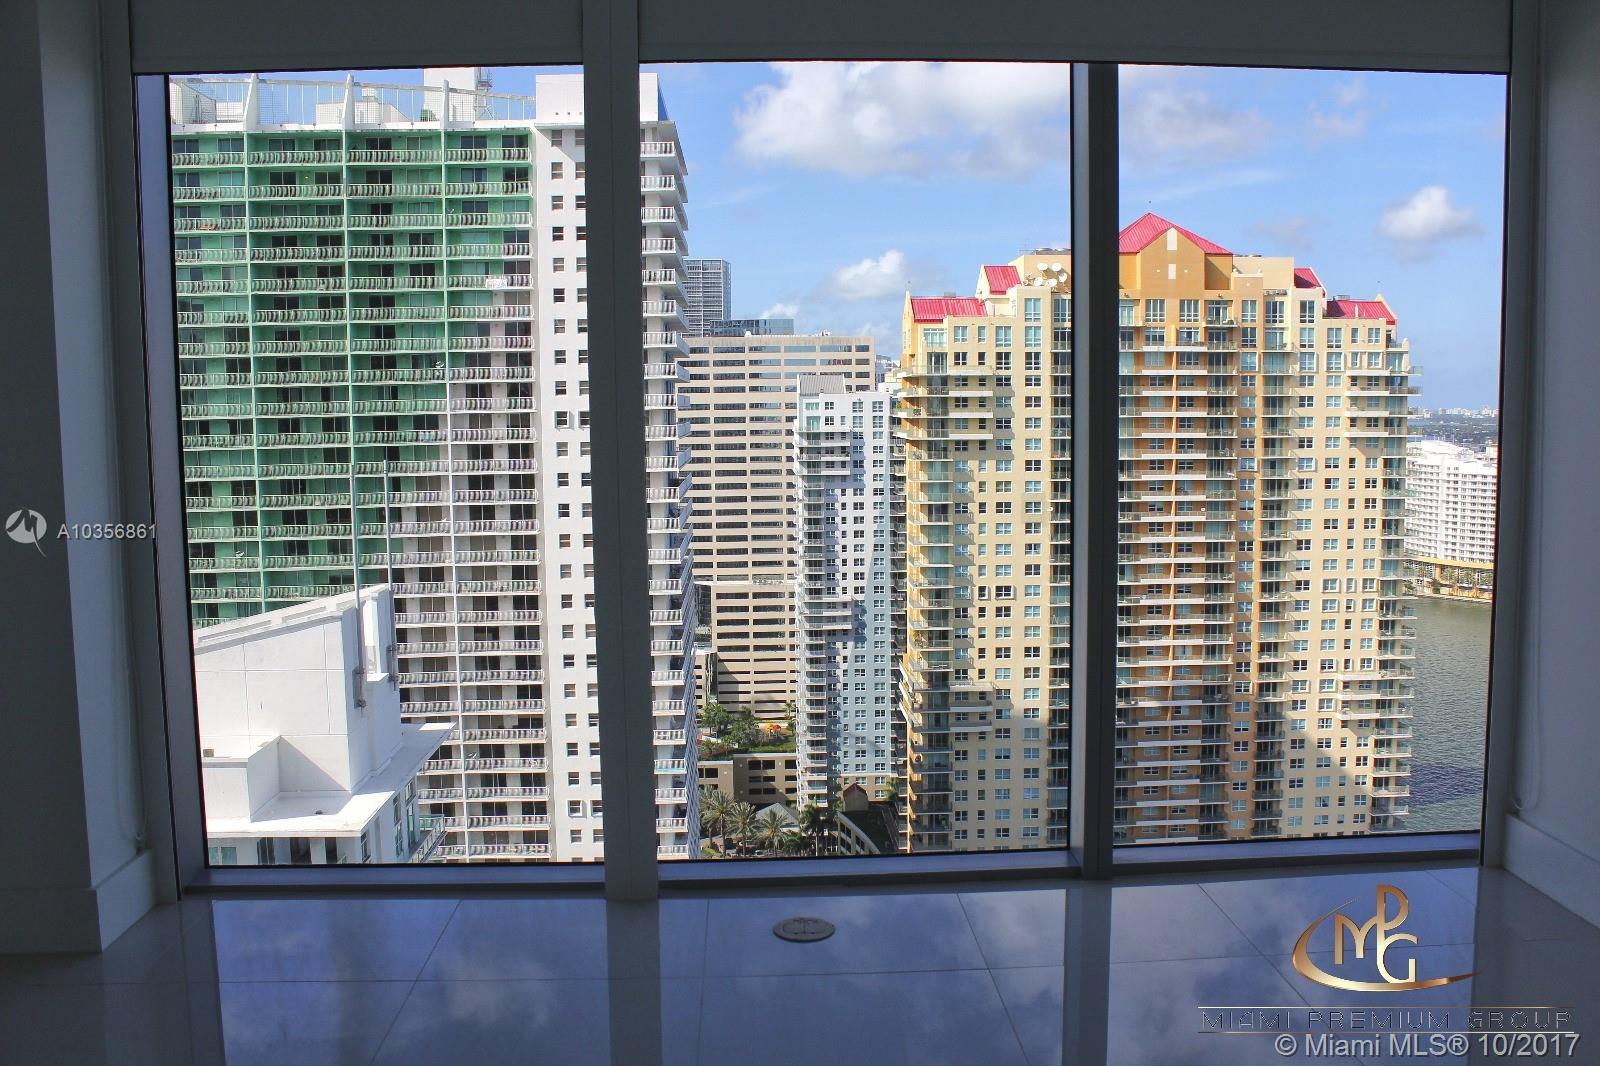 Brickell House image #7